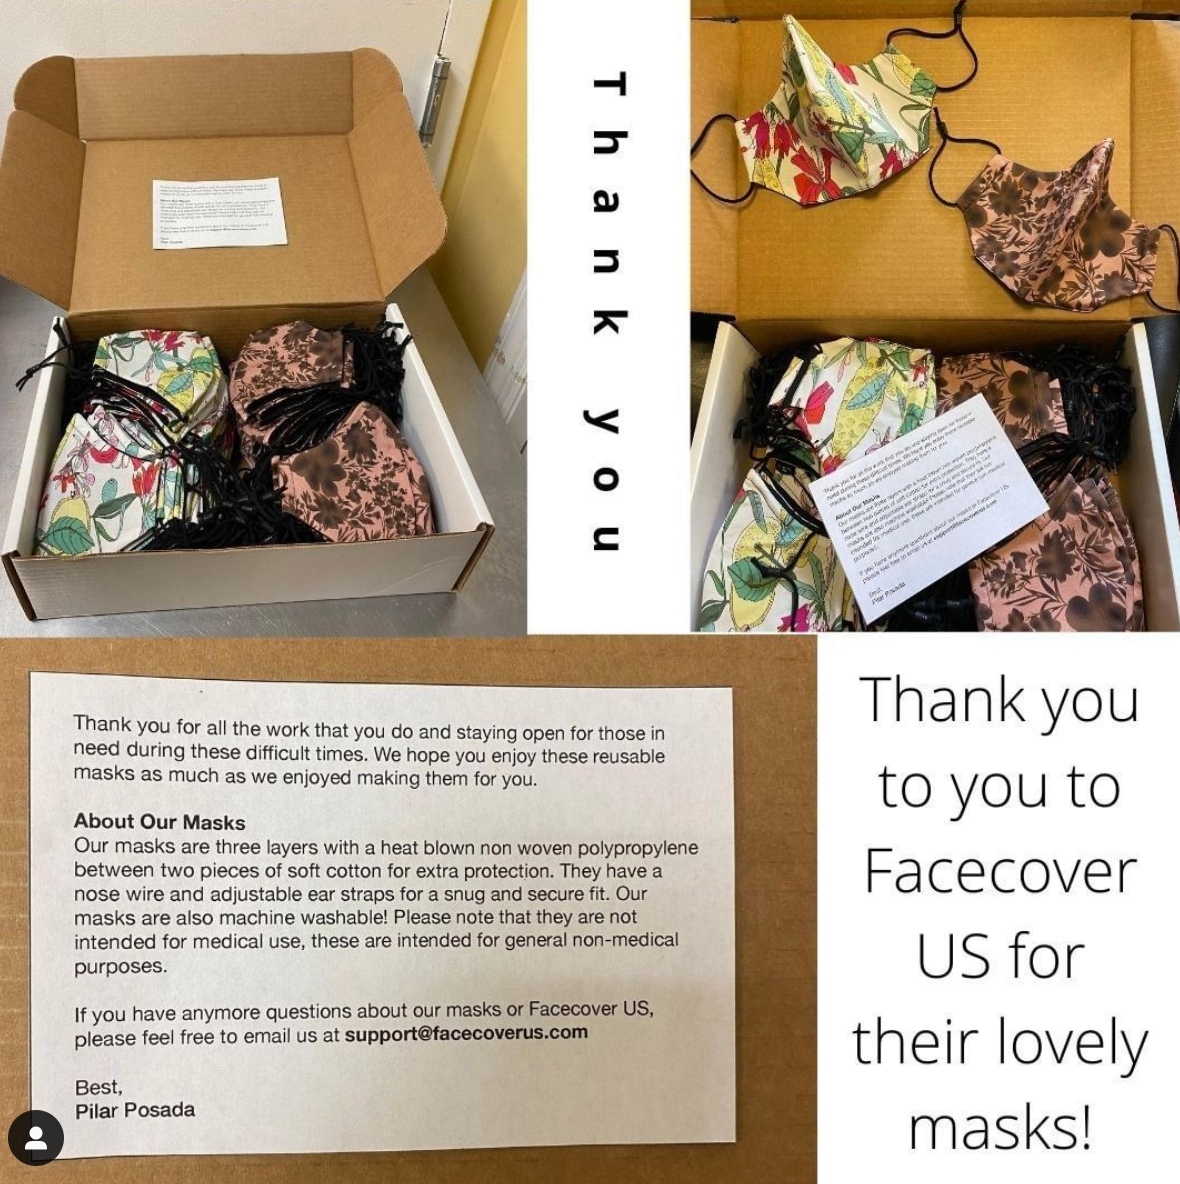 Image of boxes of donation masks and a thank you note sent to people